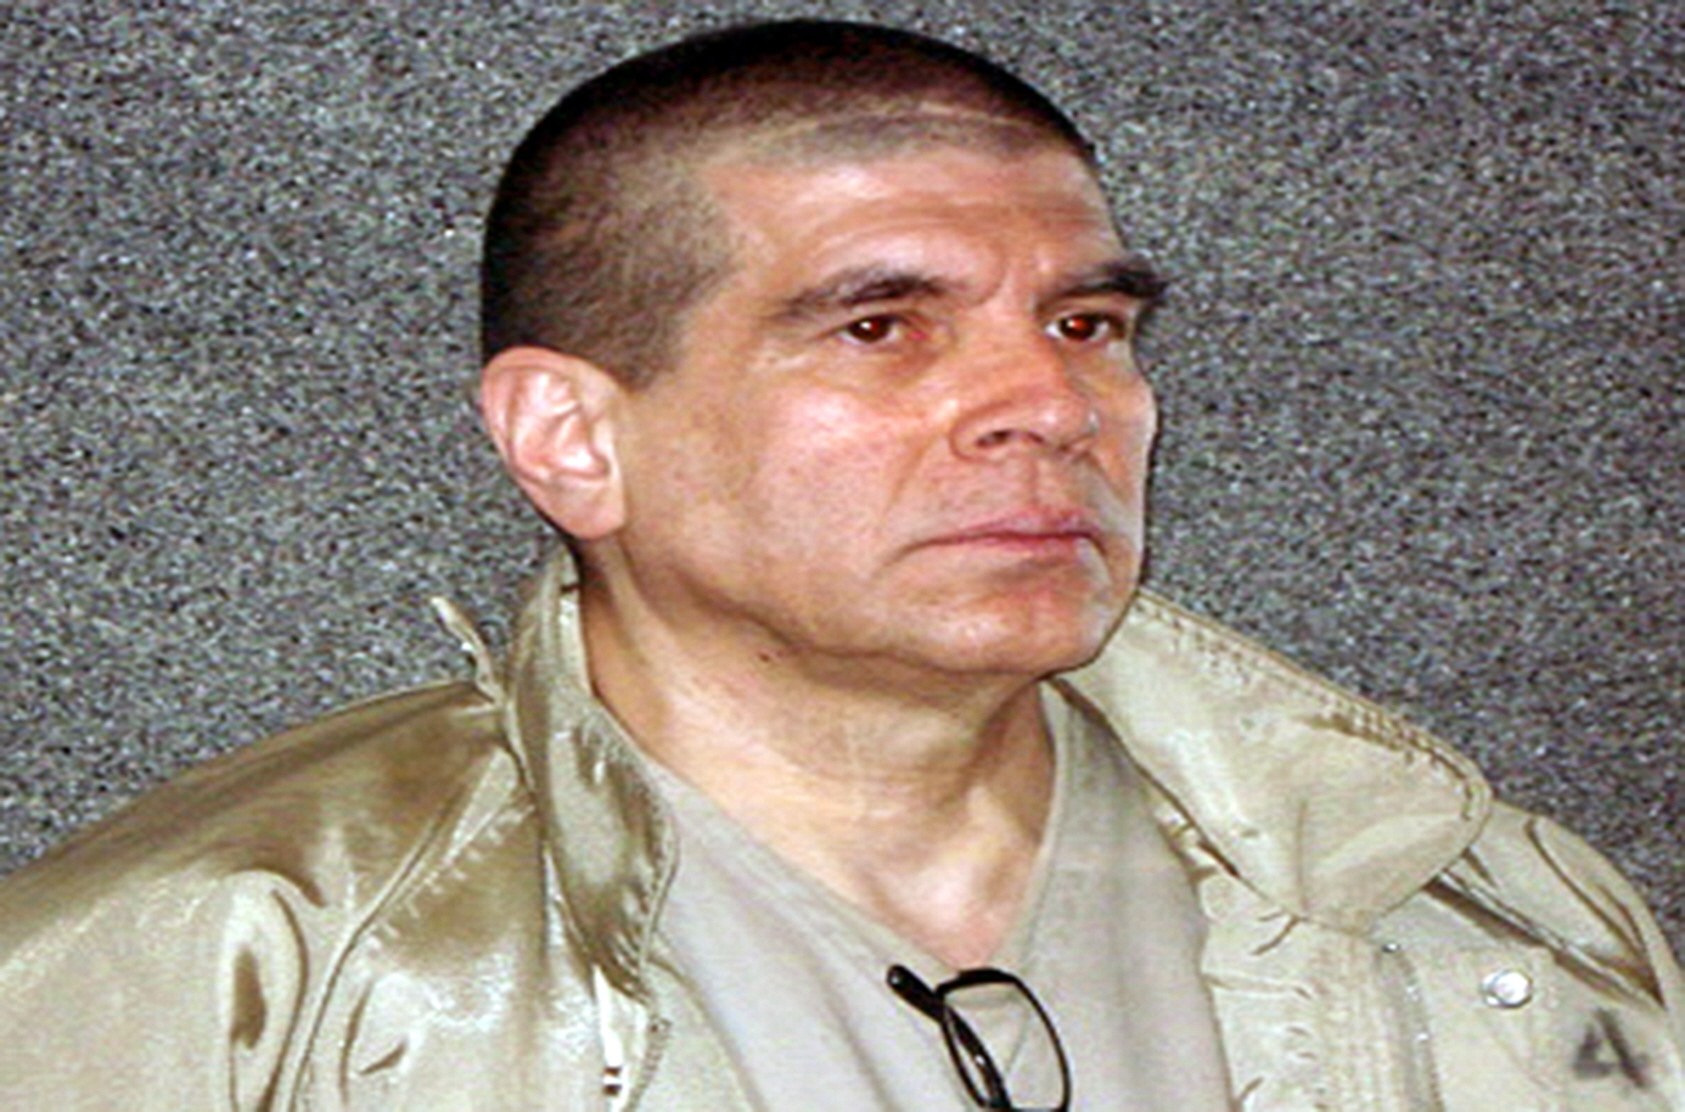 Picture released on April 29, 2011 in Mexico City by General Attorney, showing Benjamin Arellano Felix, considered the number one and head of the notorious drug trafficking Tijuana cartel. Arellano Felix was extradited to the United States and will be arraigned in Federal District Court in San Diego. The battles between drug lords have claimed more than 35,000 dead across the country over the past three years, according to official figures. AFP PHOTO / PGR / HANDOUT (Photo credit should read PGR/AFP/Getty Images)